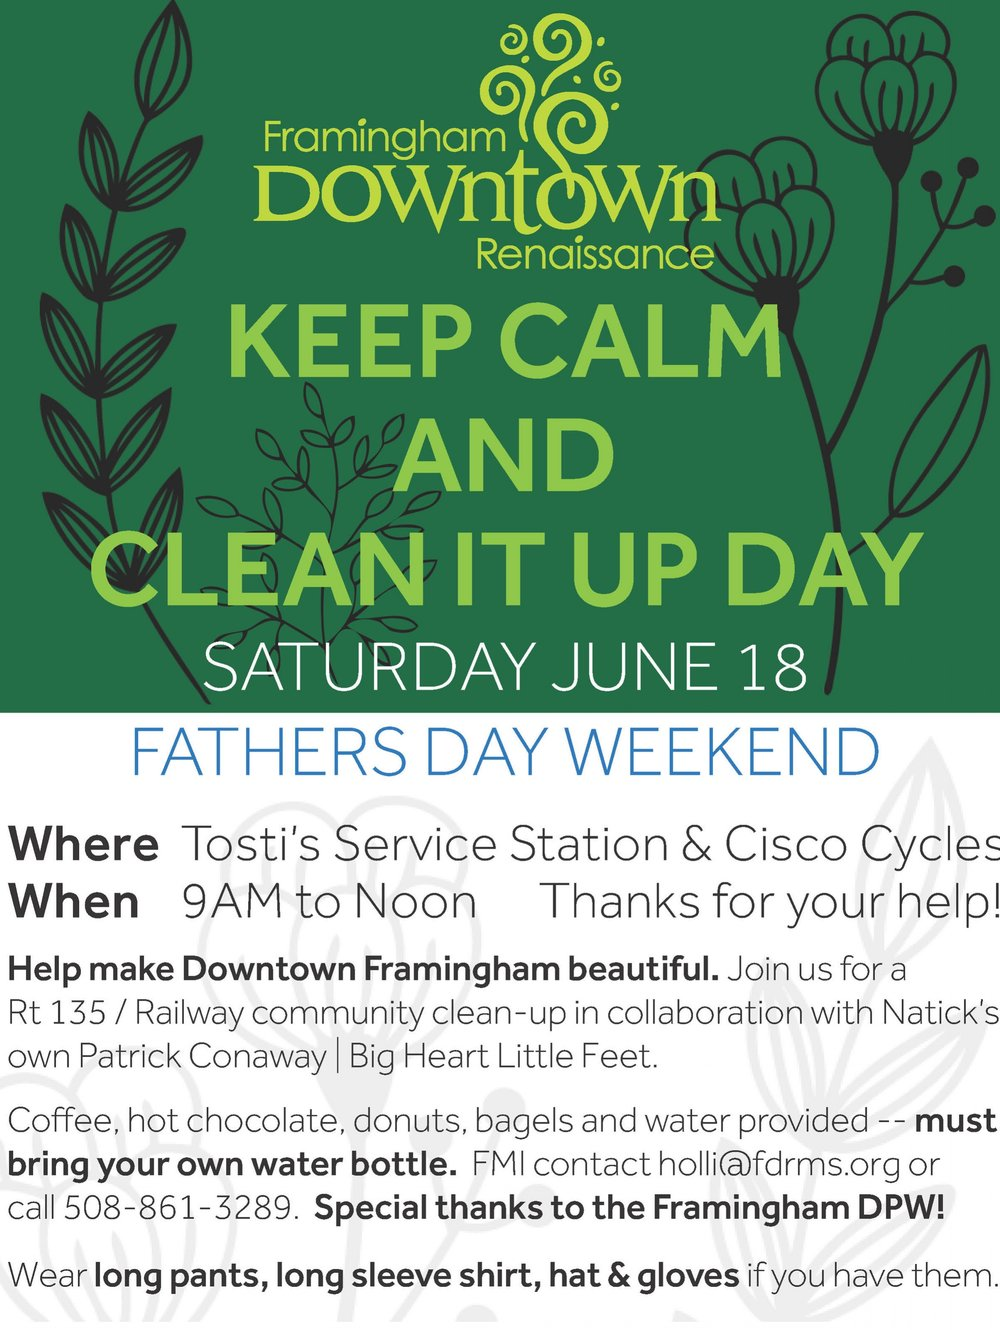 Route 135 Father's Day Community Cleanup